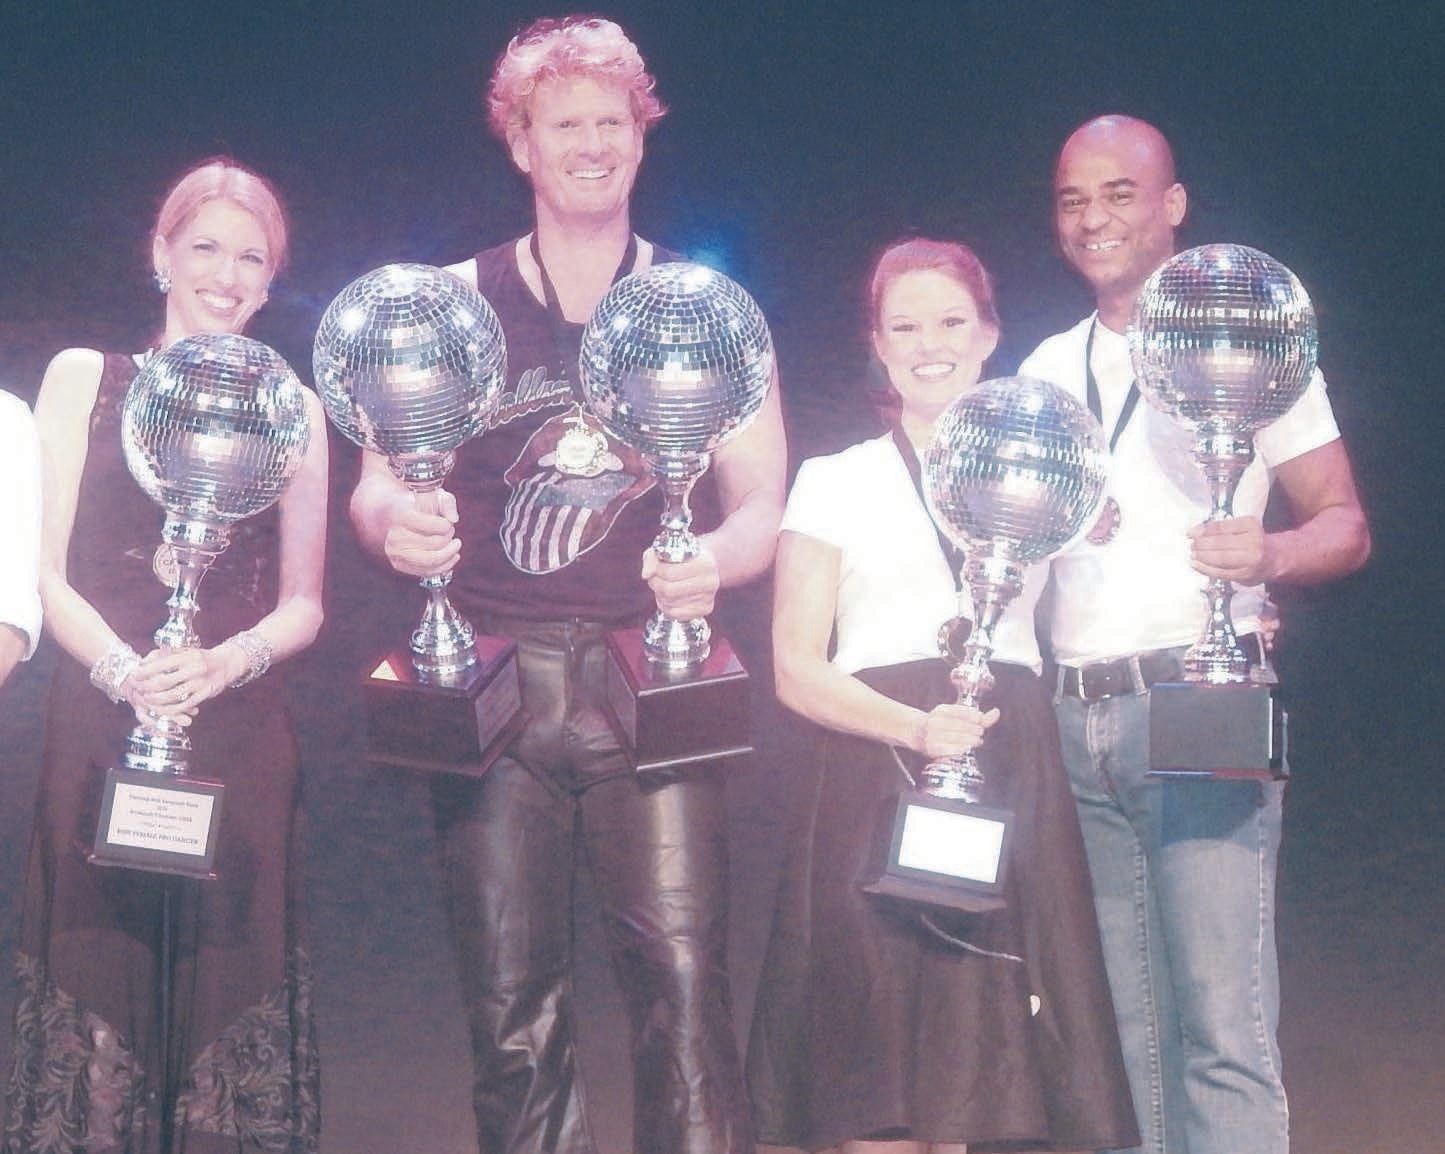 L-R Jaelynn Fulks, Best Pro Female; Corde Wilson, Best Male; Karen Daiss, Best Female and Jos'h Marion, Best Pro Male